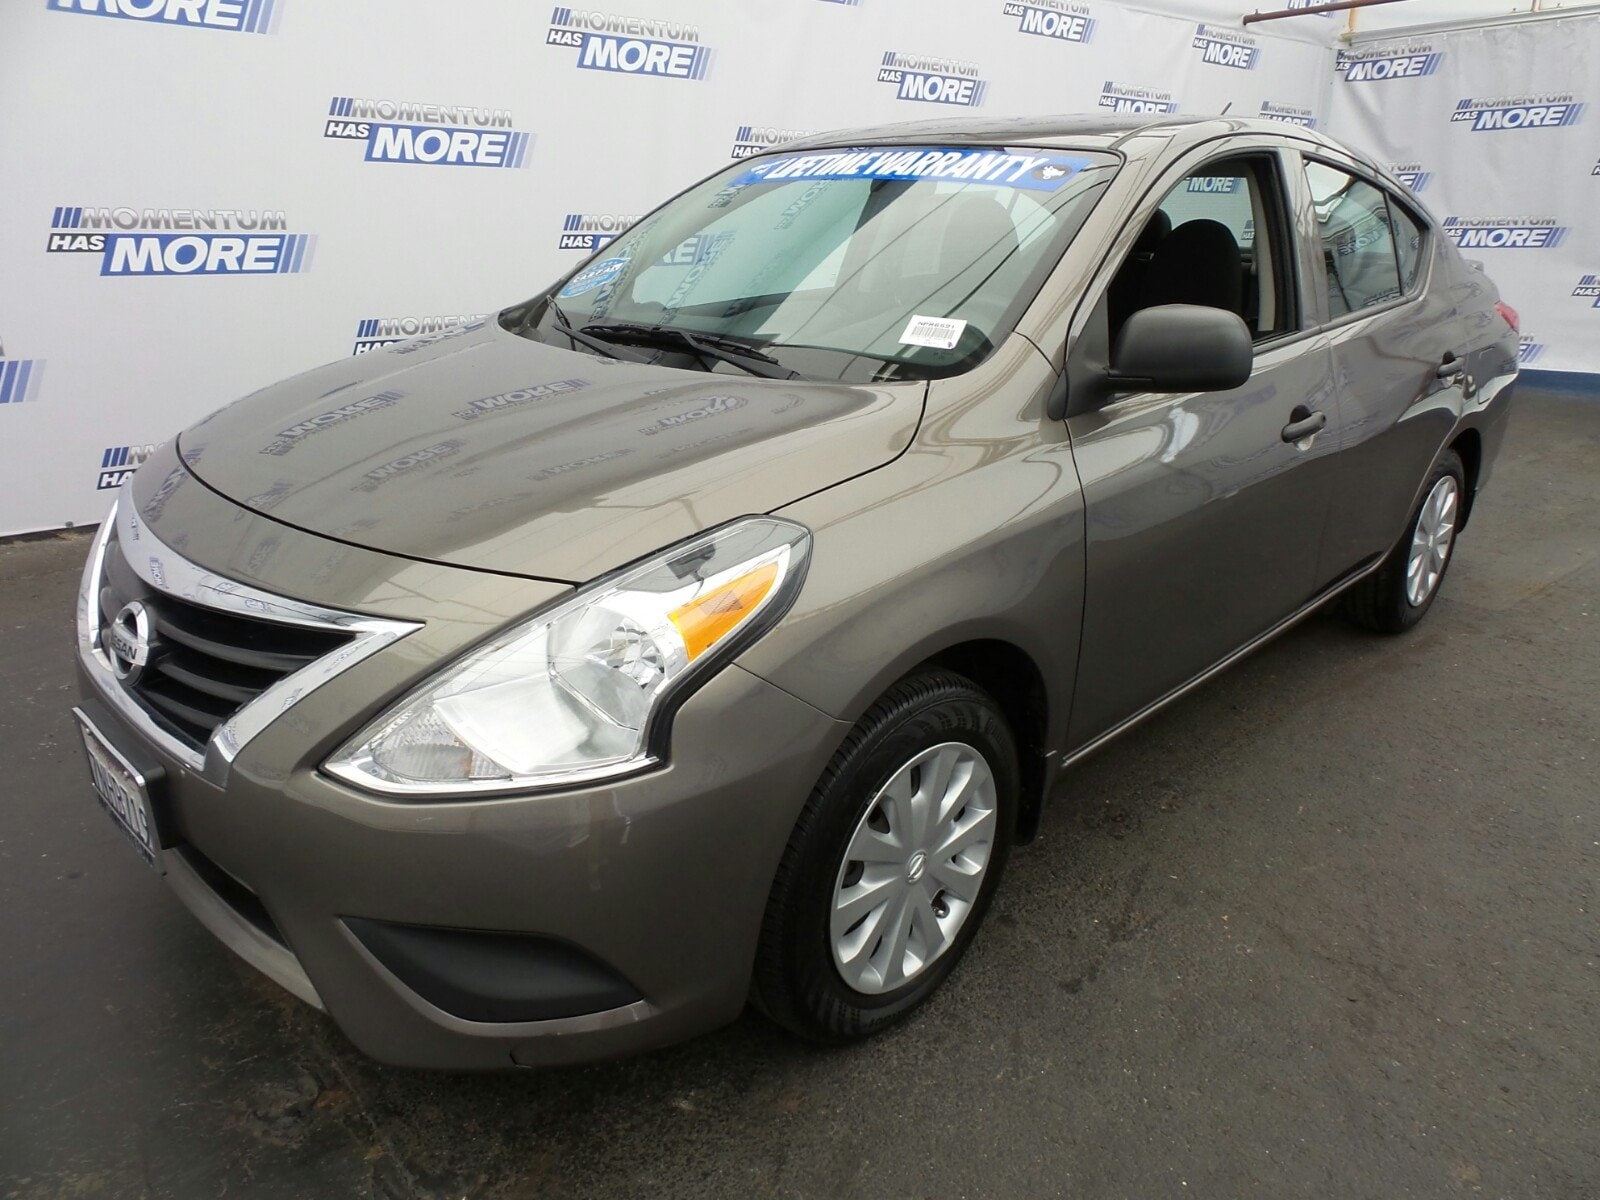 used 2015 Nissan Versa S for sale in Fairfield, CA